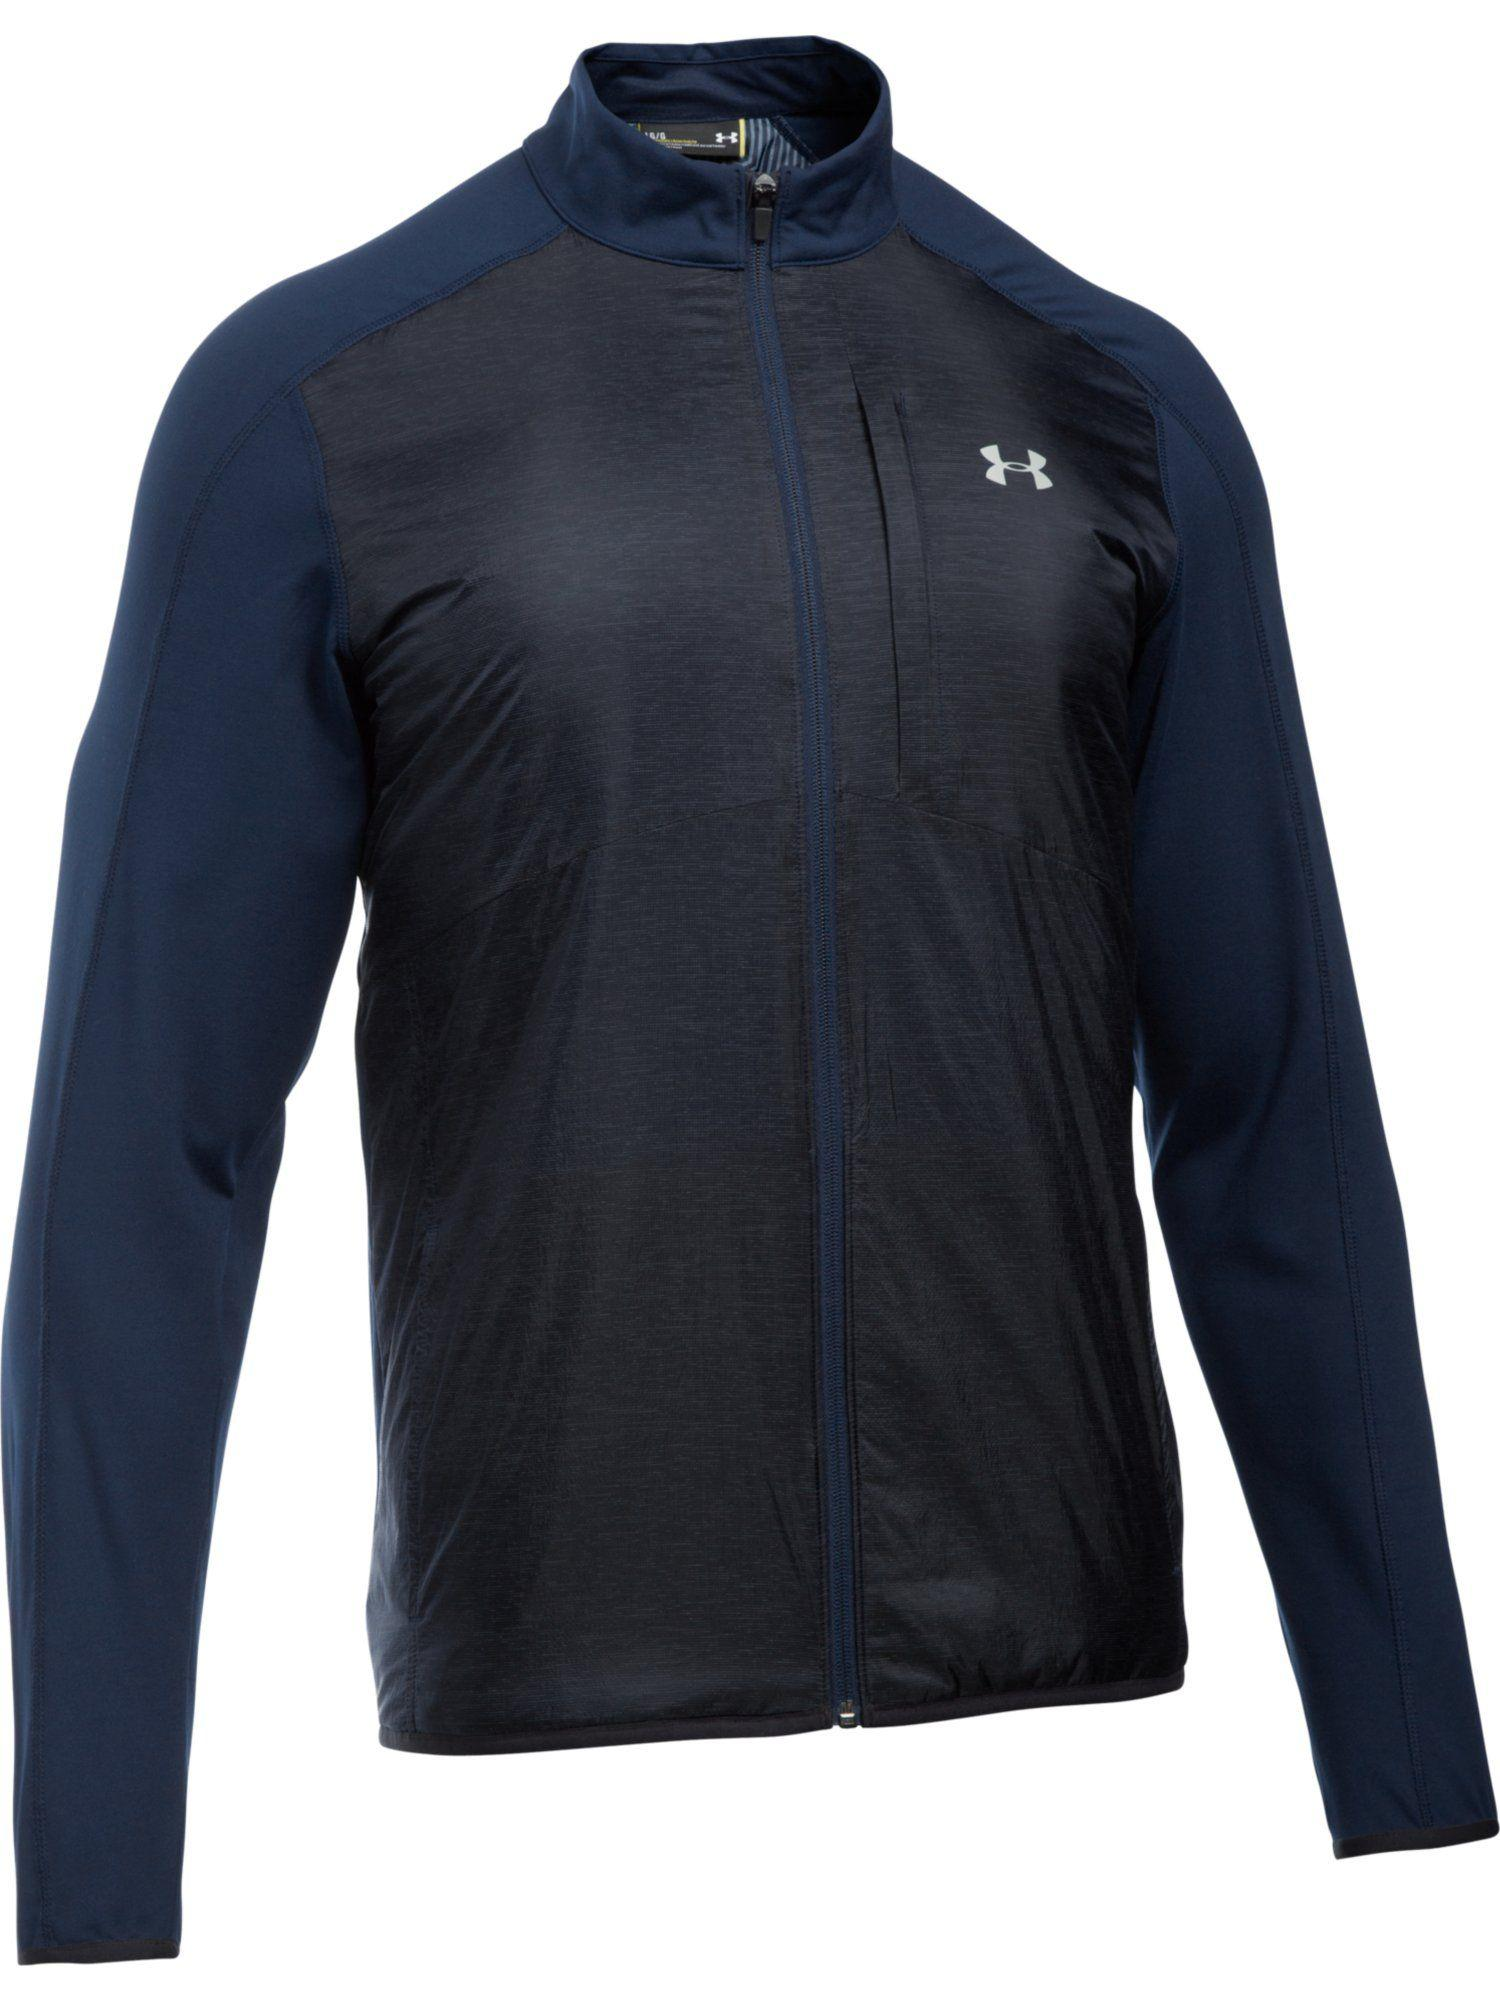 Lyst Under Armour Cgi Insulated Jacket In Blue For Men